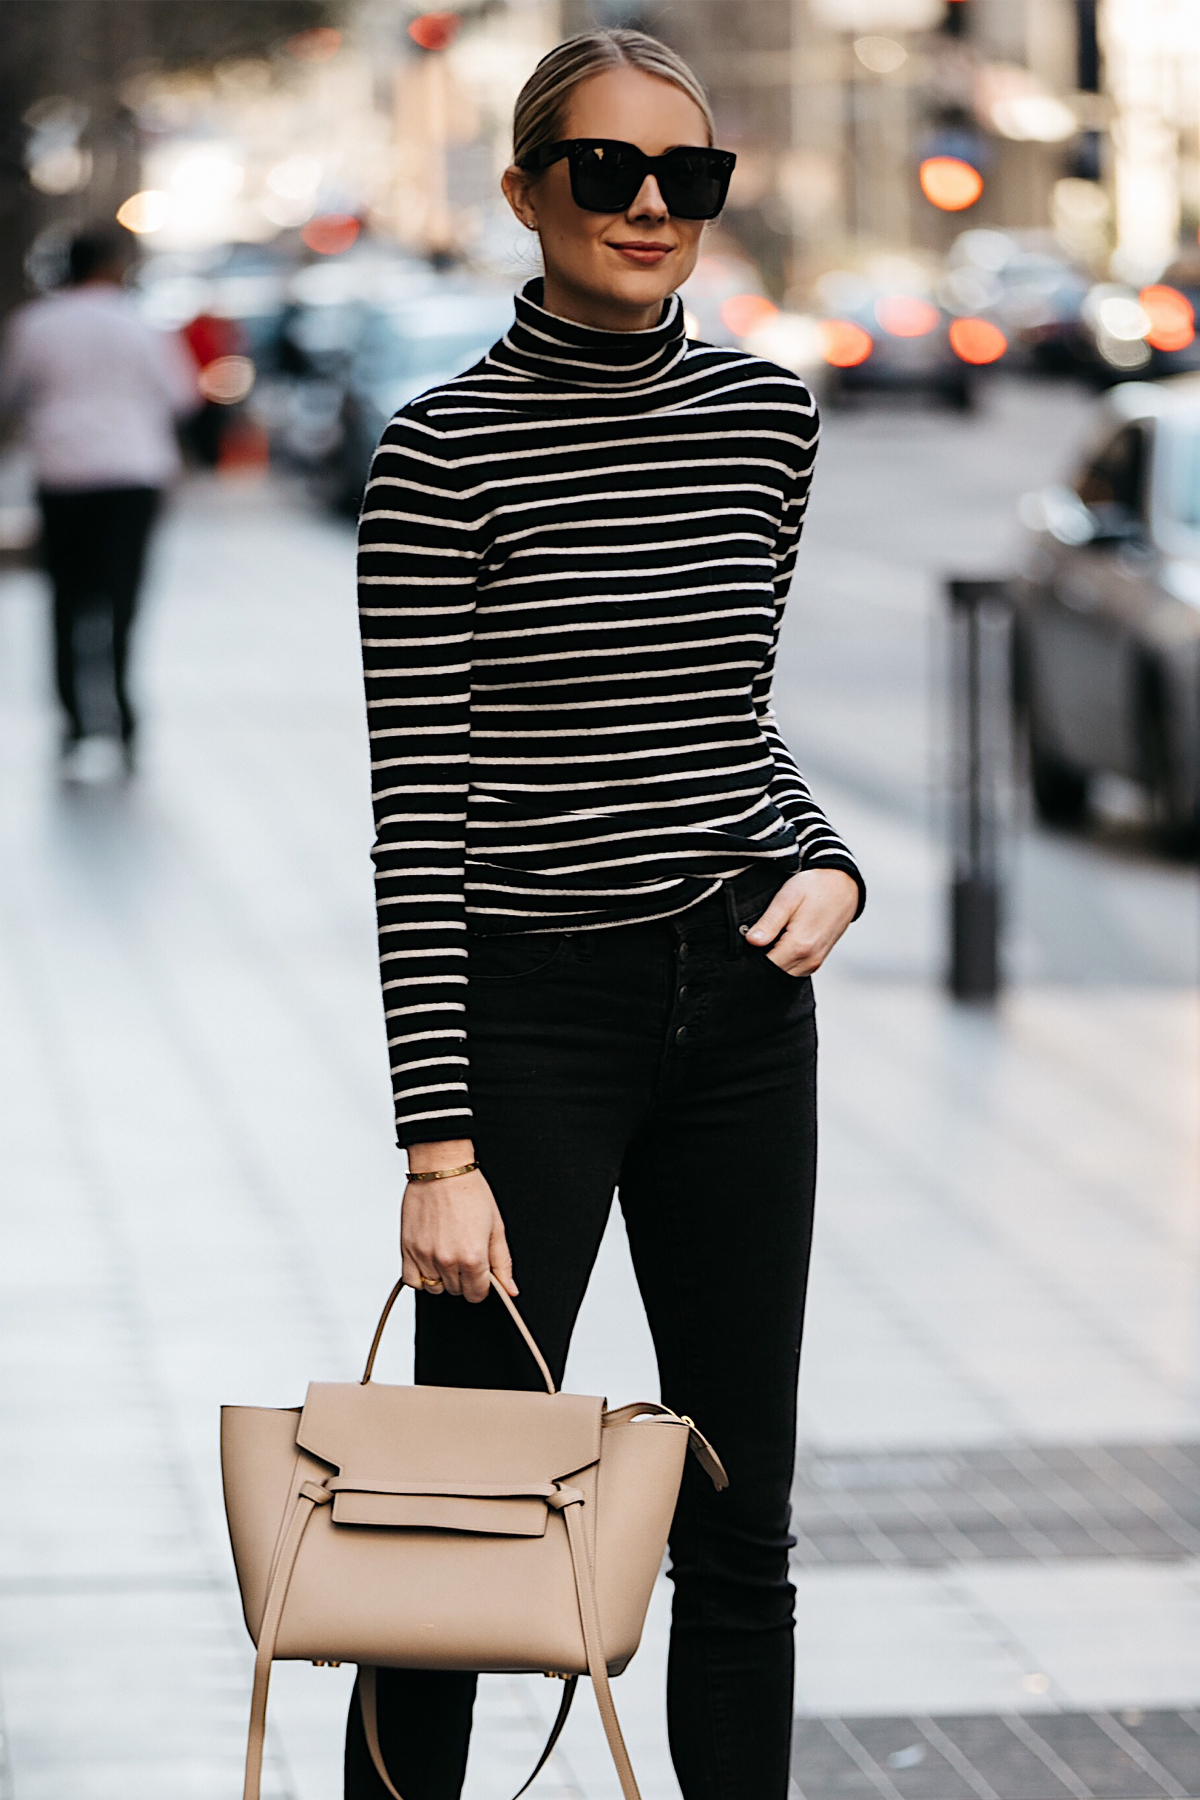 Blonde Woman Wearing Nordstrom Black White Striped Turtleneck Sweater Black Skinny Jeans Outfit Celine Mini Belt Bag Fashion Jackson Dallas Blogger Fashion Blogger Street Style